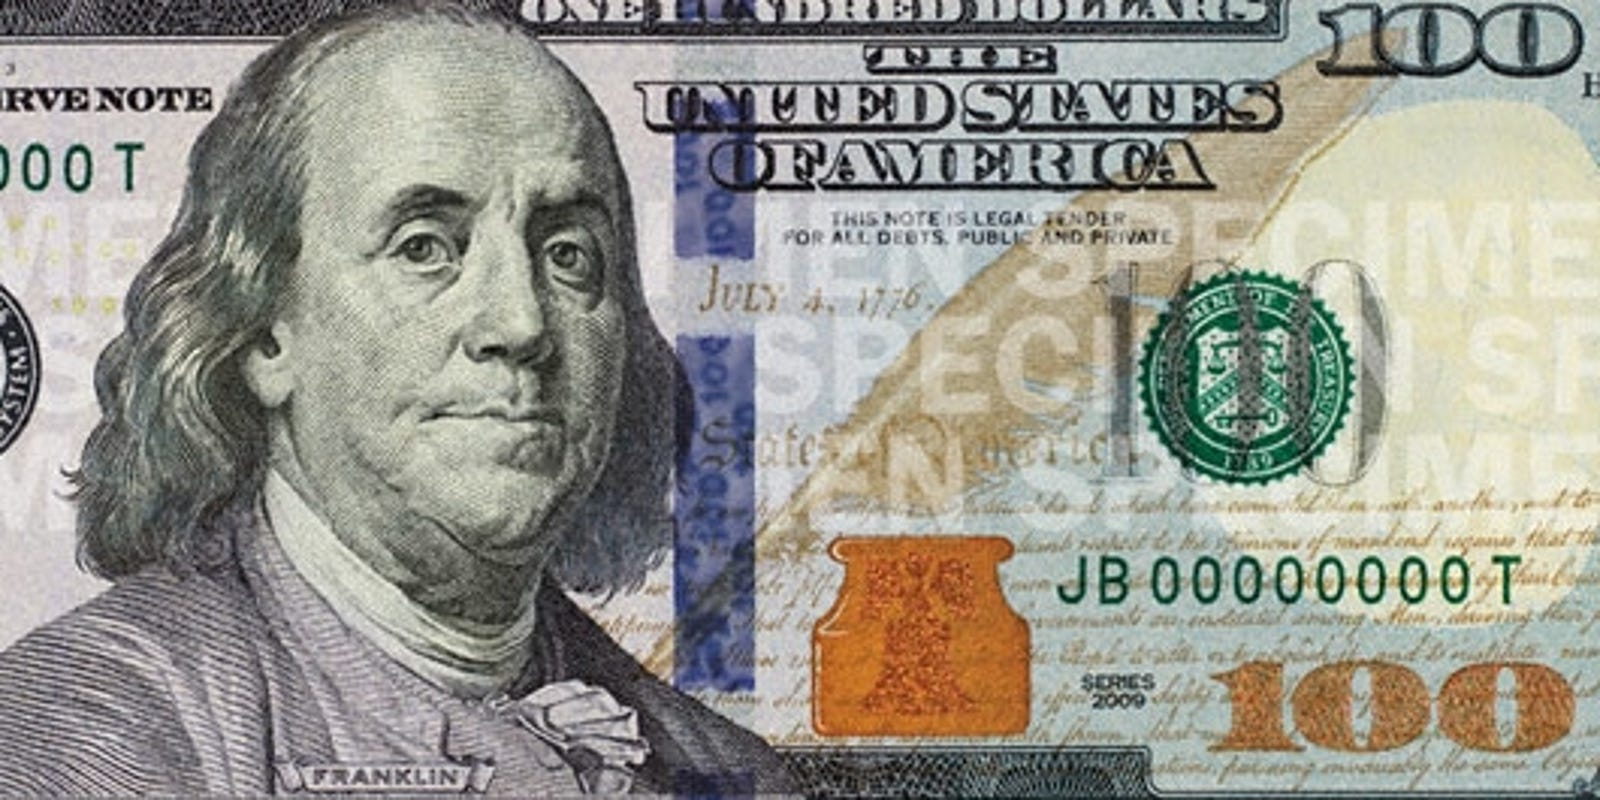 worksheet 100 Dollar Bill Printable new currency out tuesday 411 on the 100